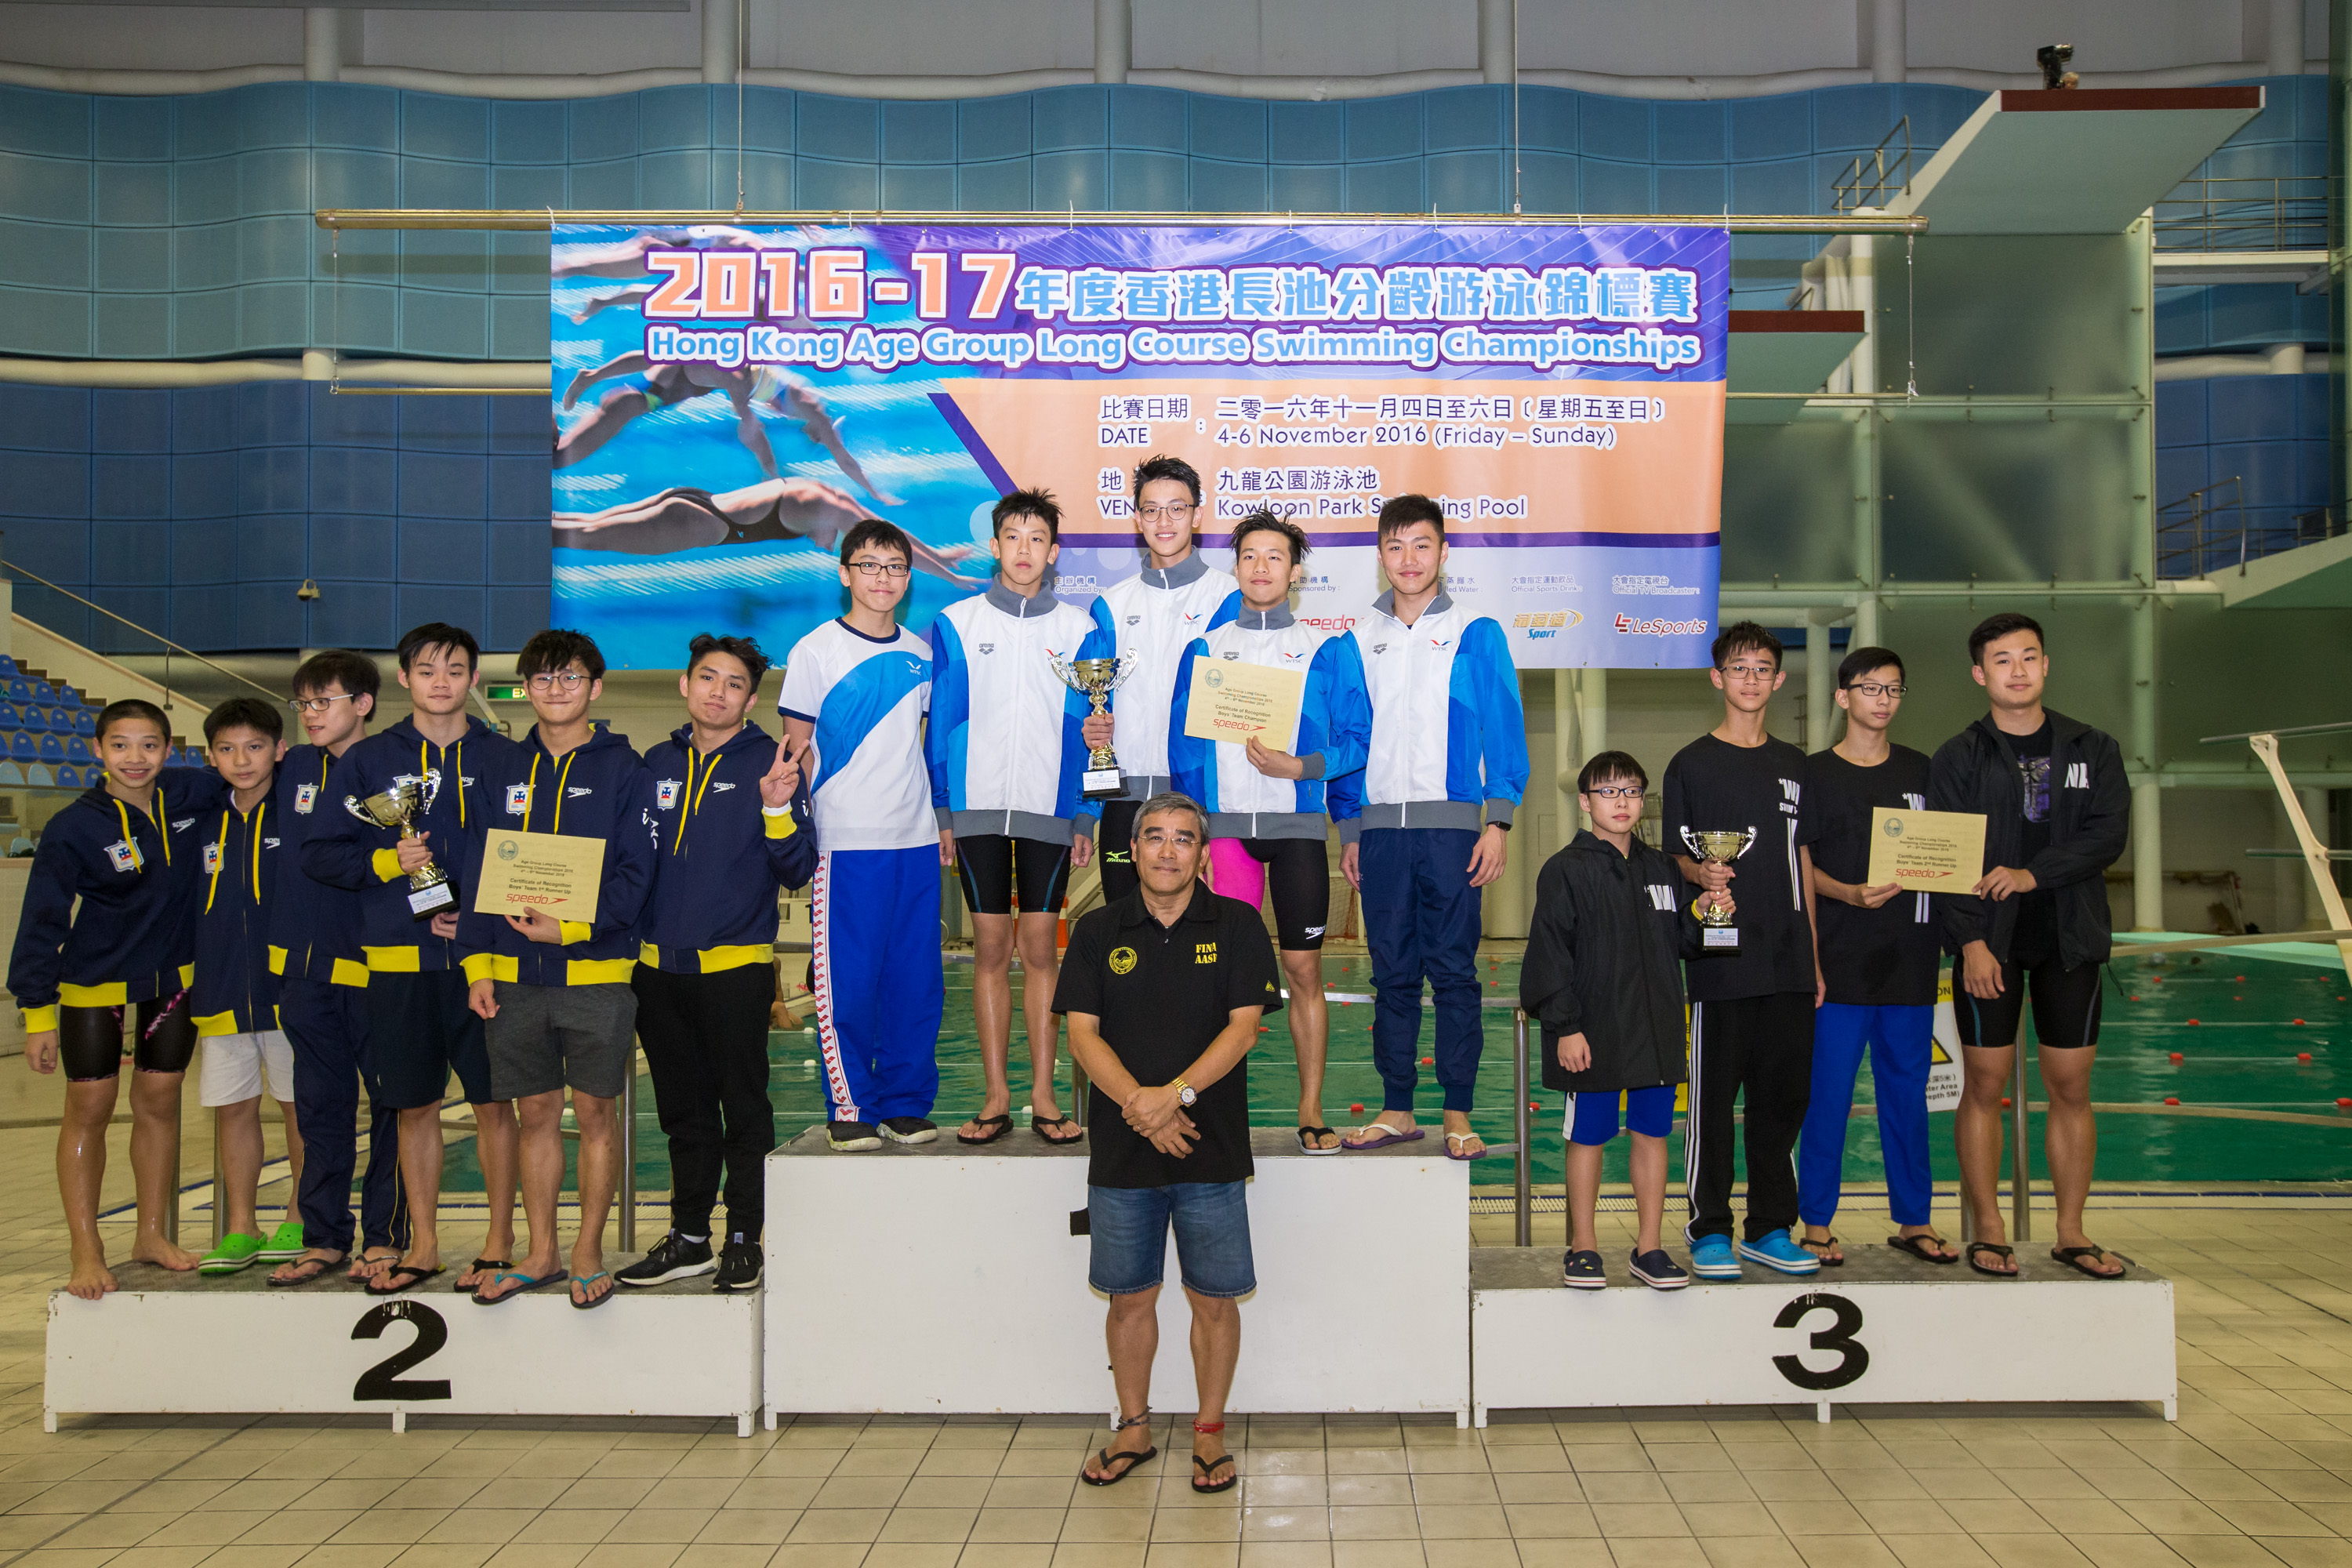 Win Tin Swimming Club - 2016 LCC Boys Team Championship